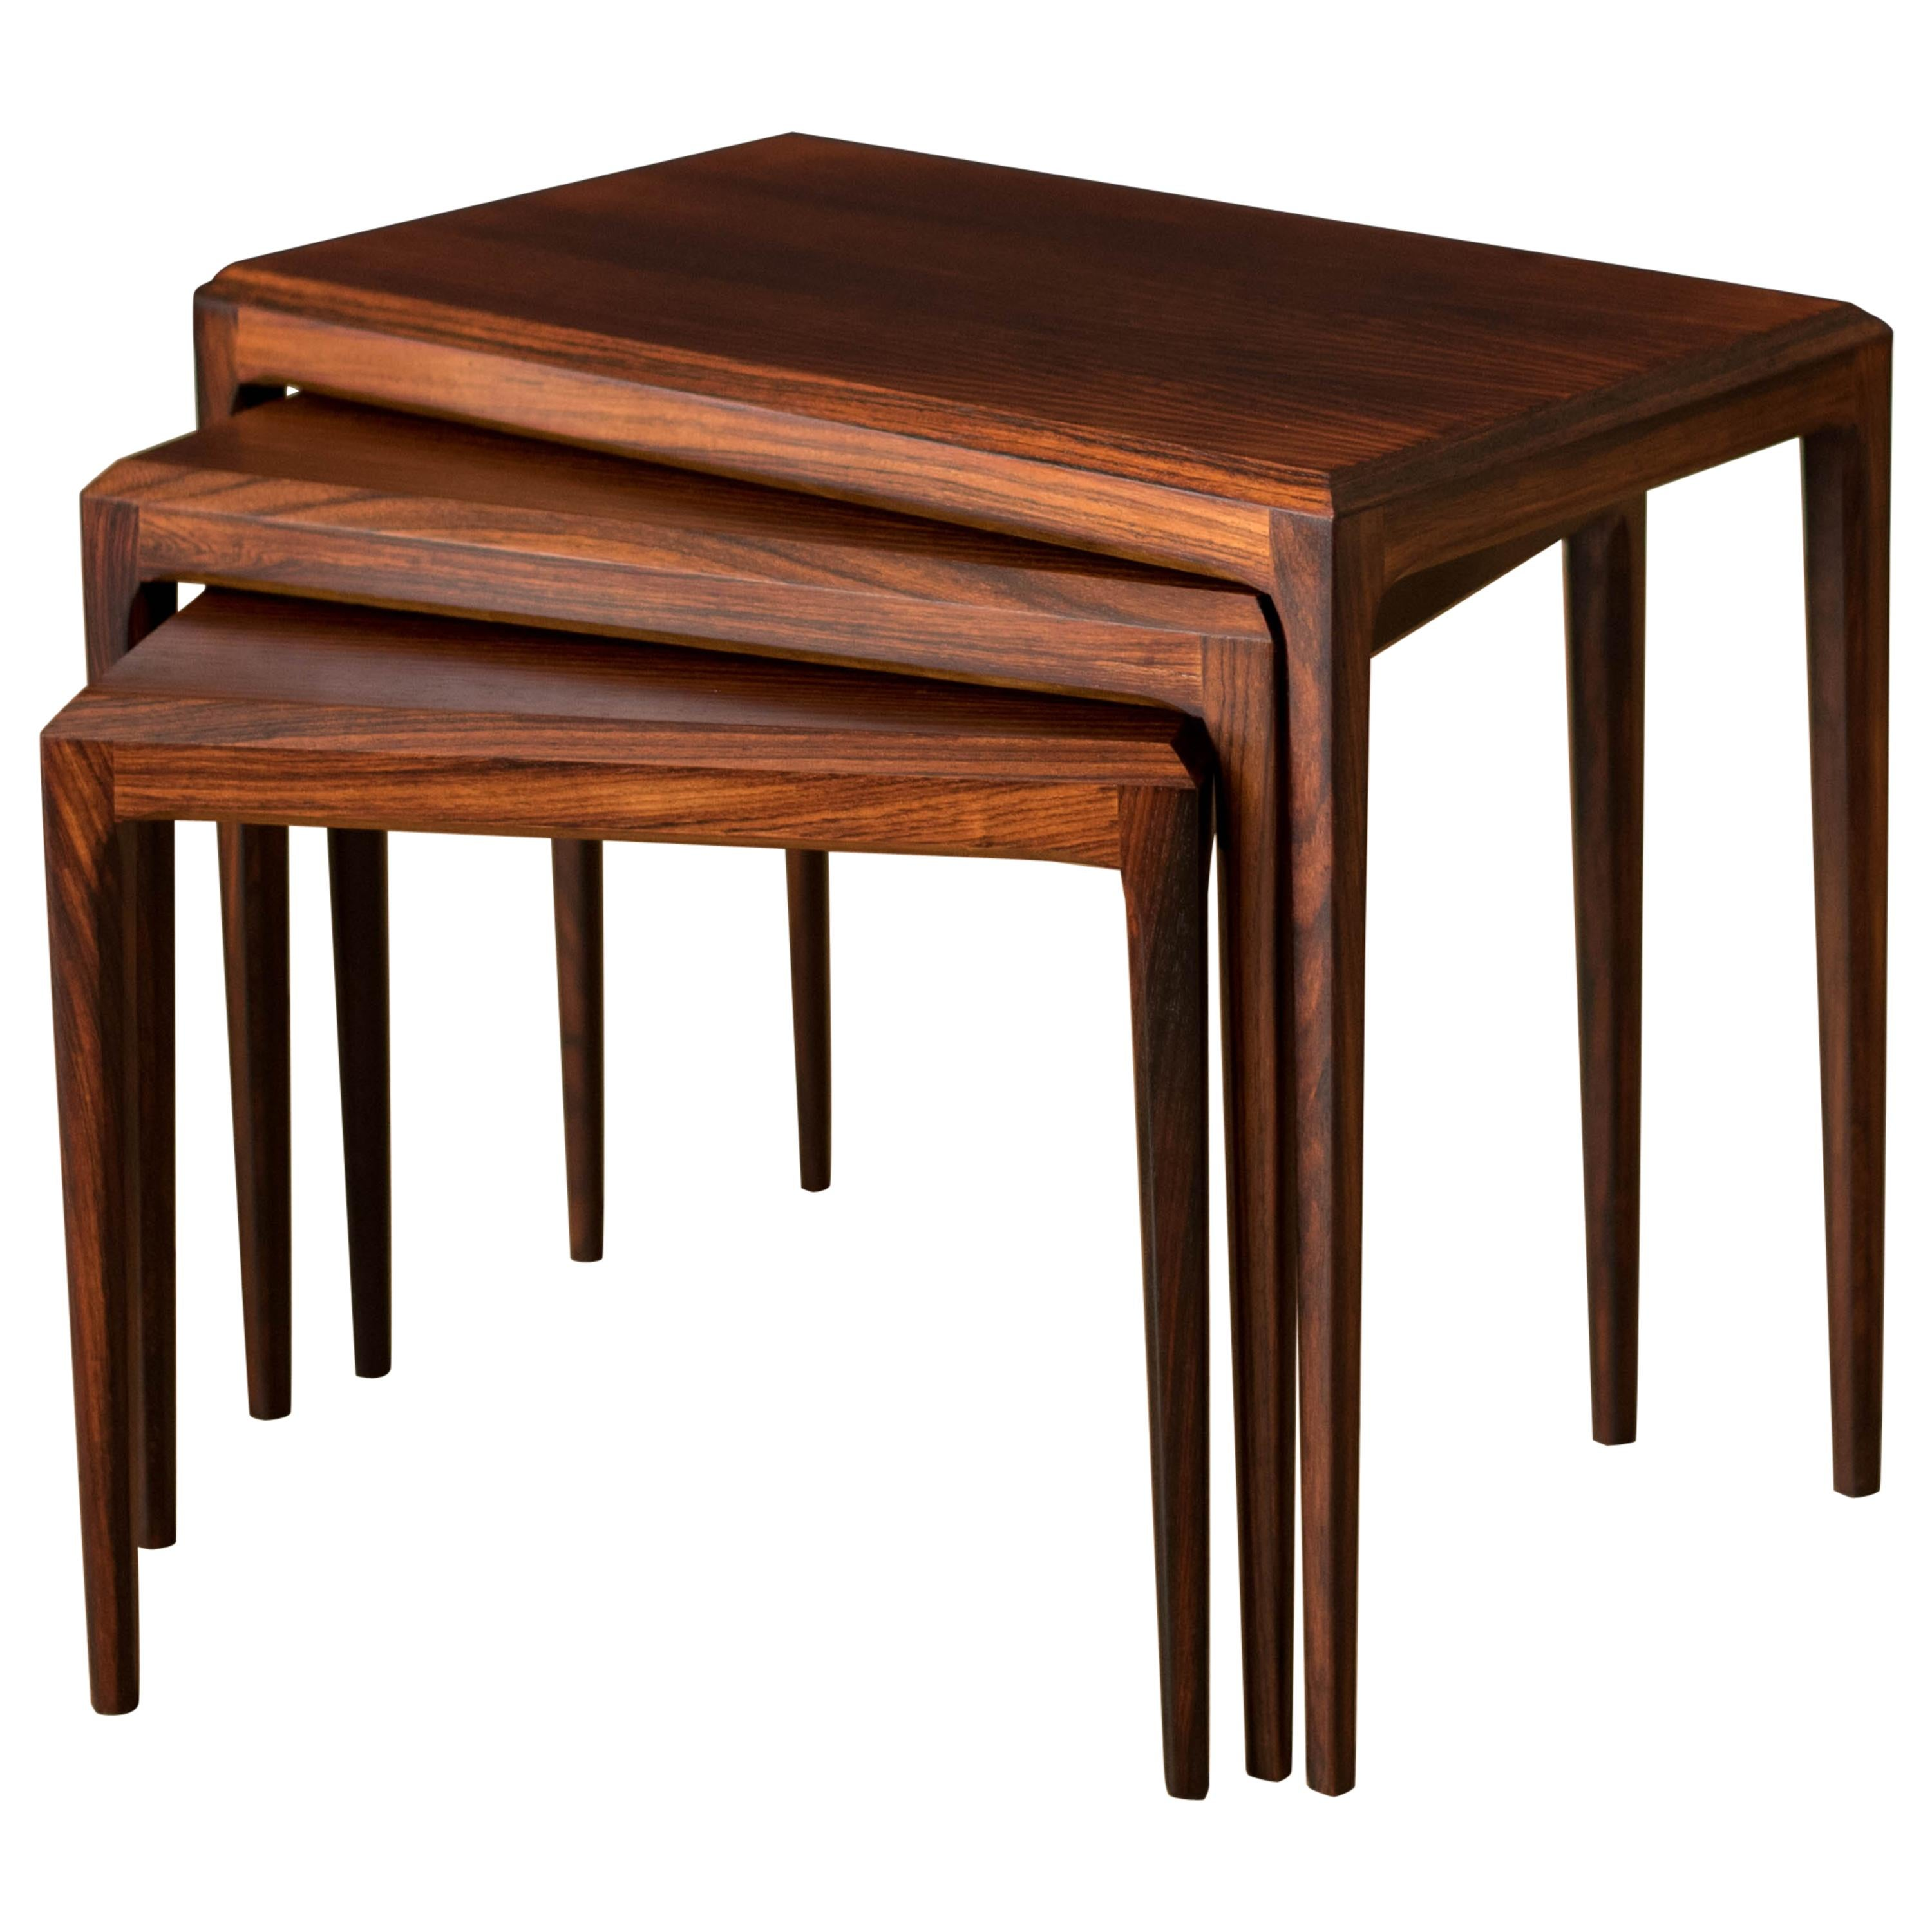 Vintage Danish Set of Three Rosewood Nesting End Tables by Johannes Andersen